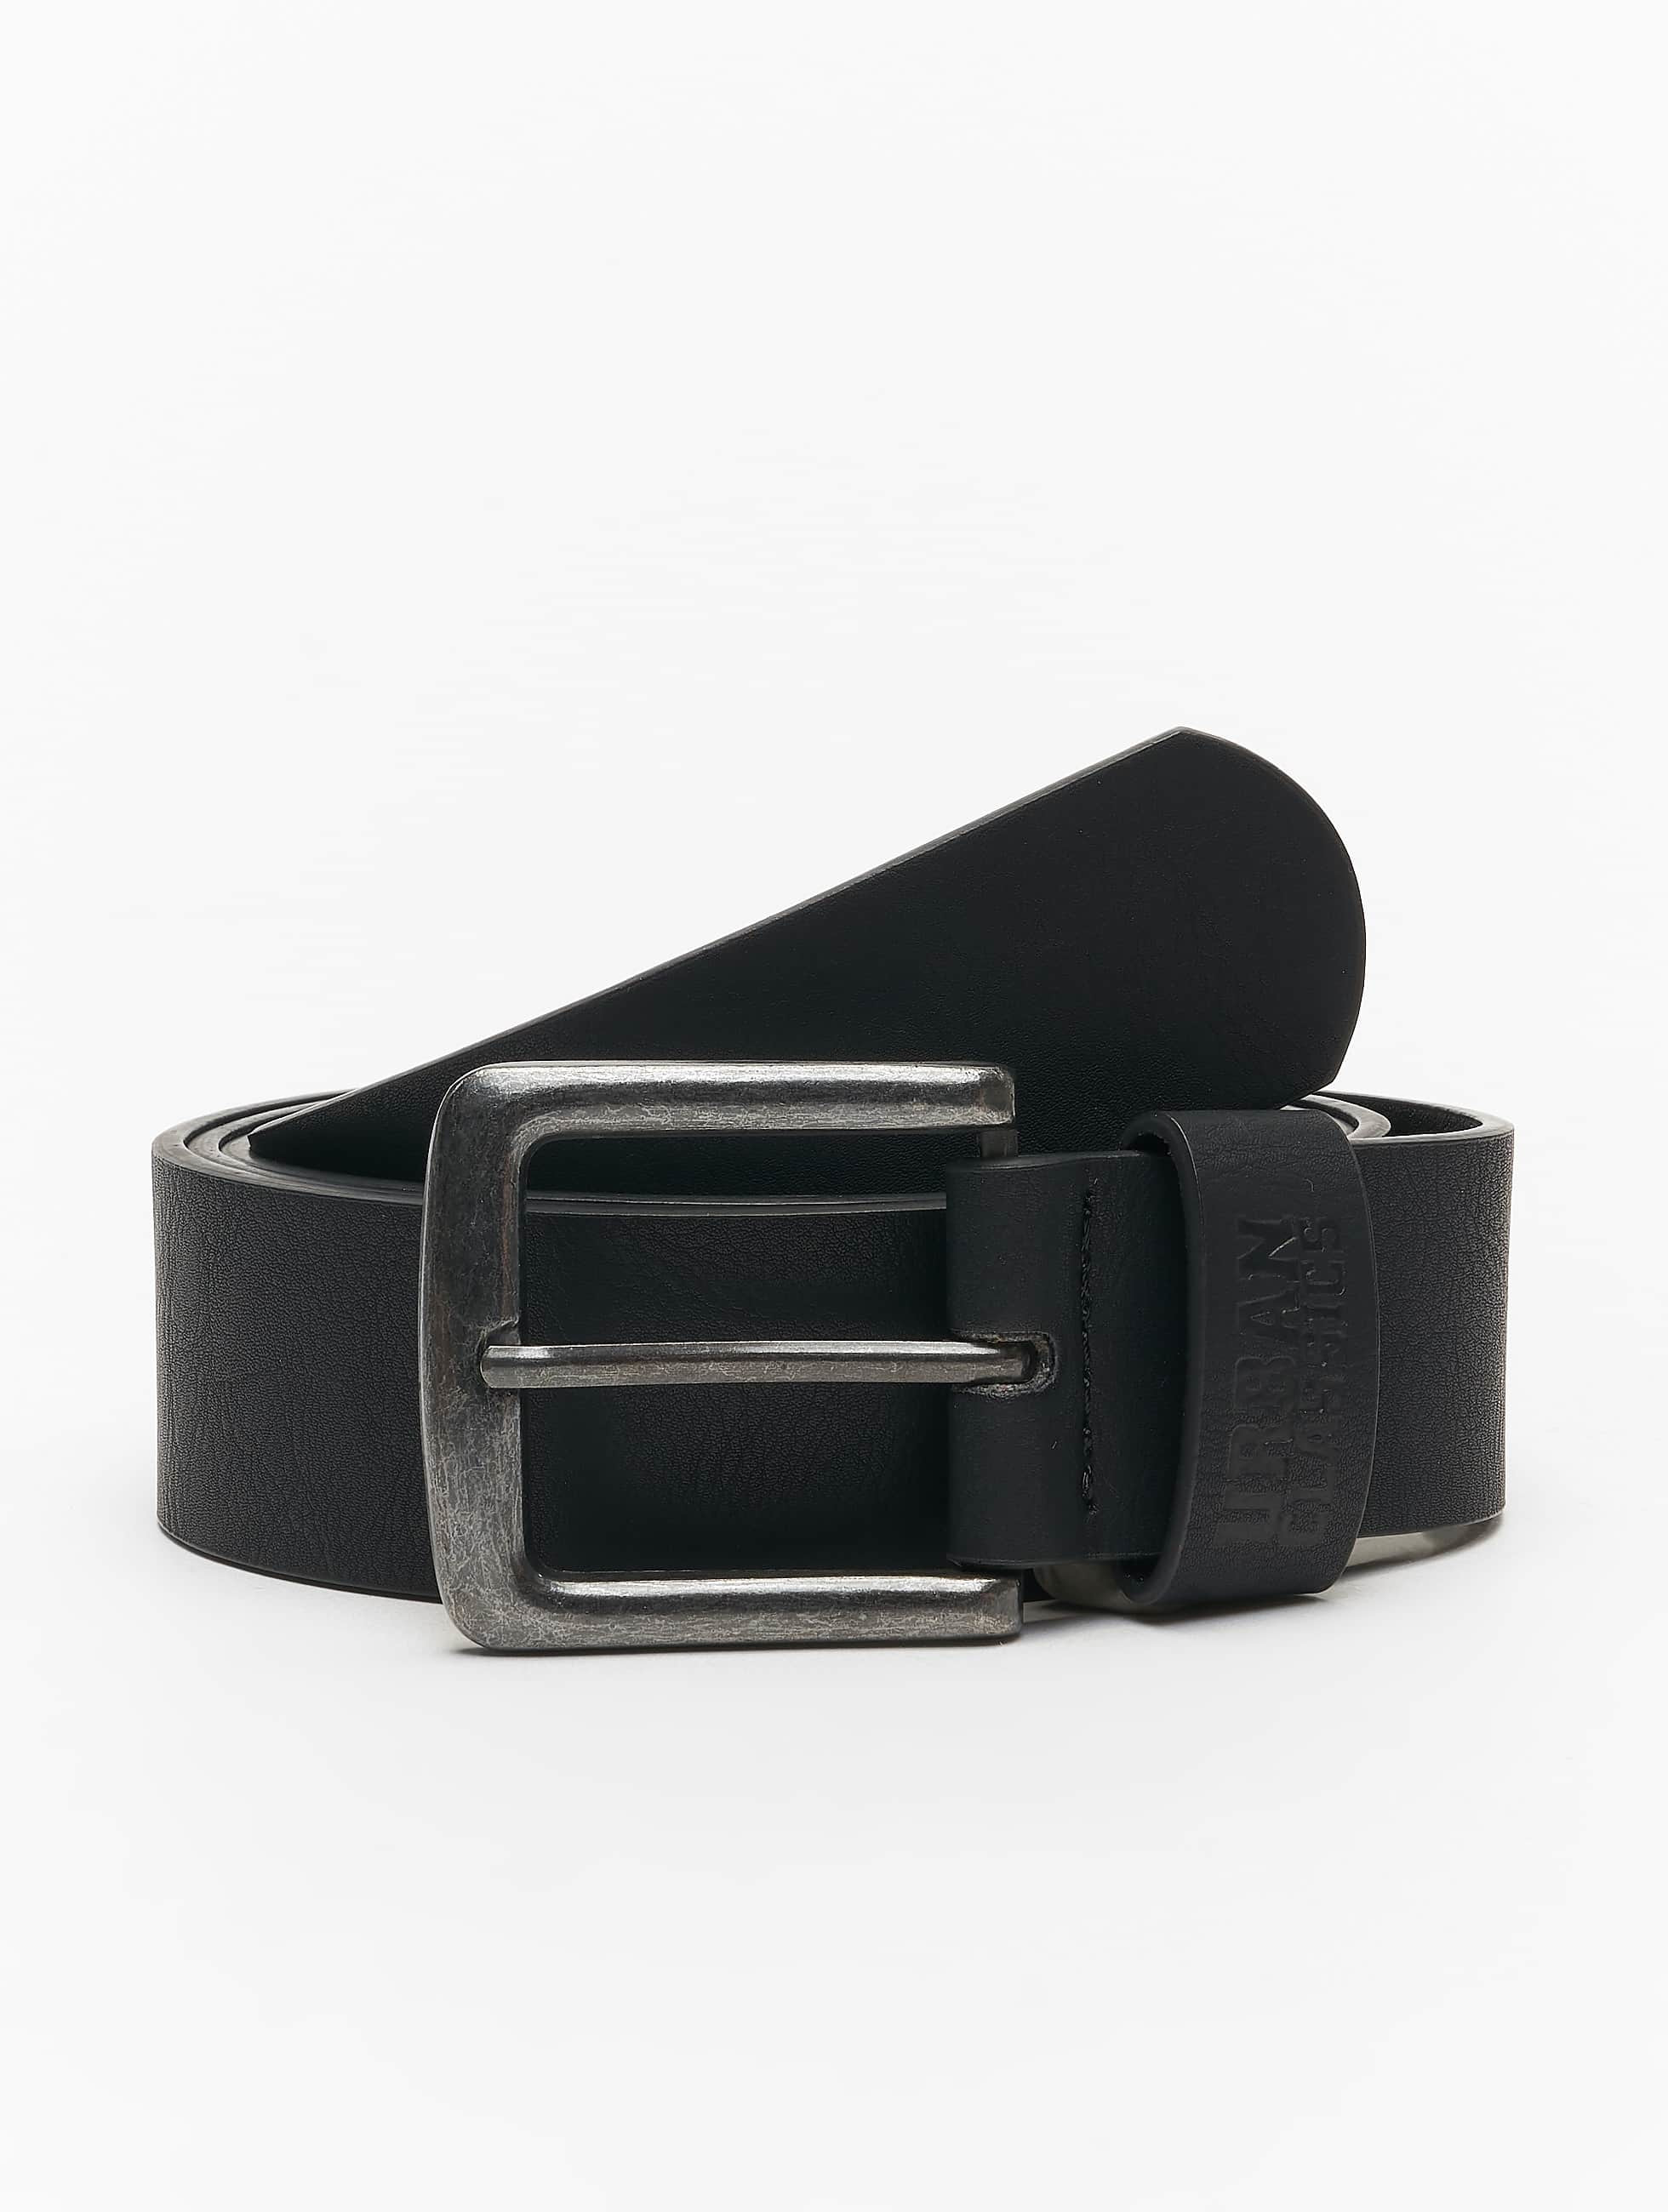 Urban Classics Ceinture Leather Imitation noir